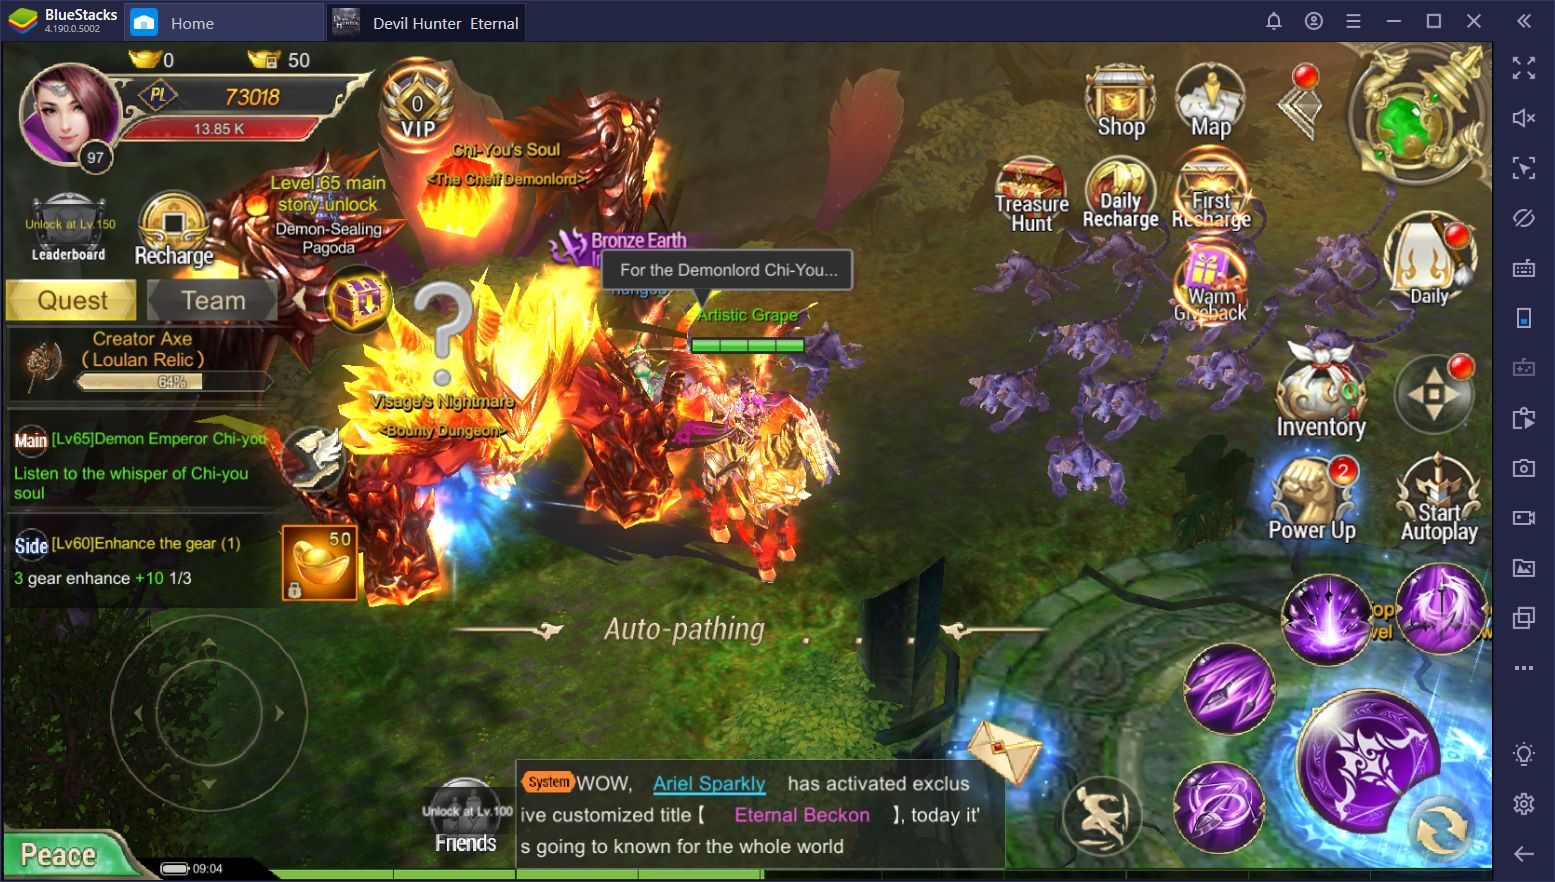 Devil Hunter: Eternal War - Beginner's Guide for Getting Started in This Mobile MMORPG